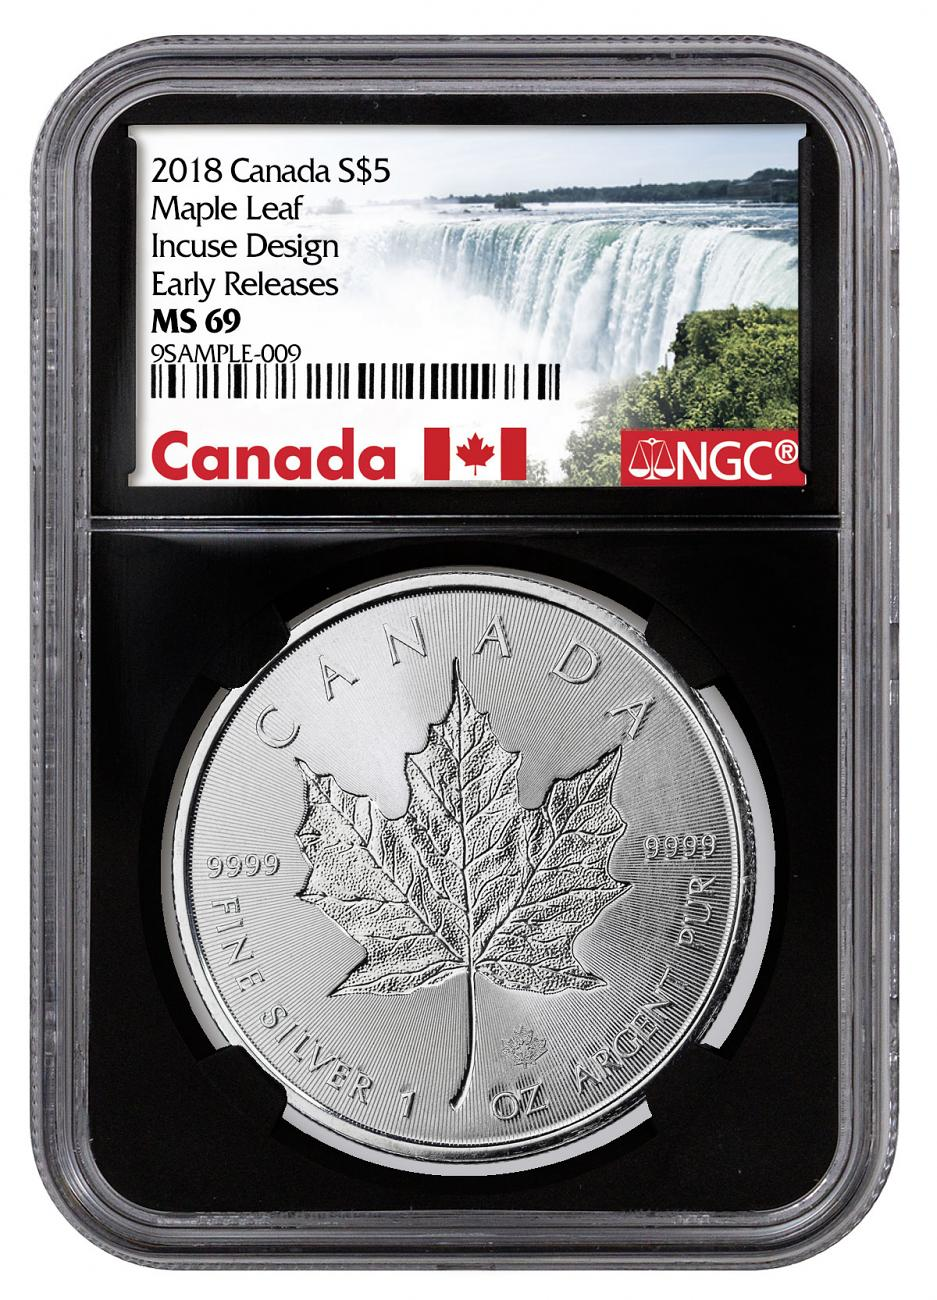 2018 Canada 1 oz Silver Maple Leaf - Incuse $5 Coin NGC MS69 ER Black Core Holder Exclusive Canada Label